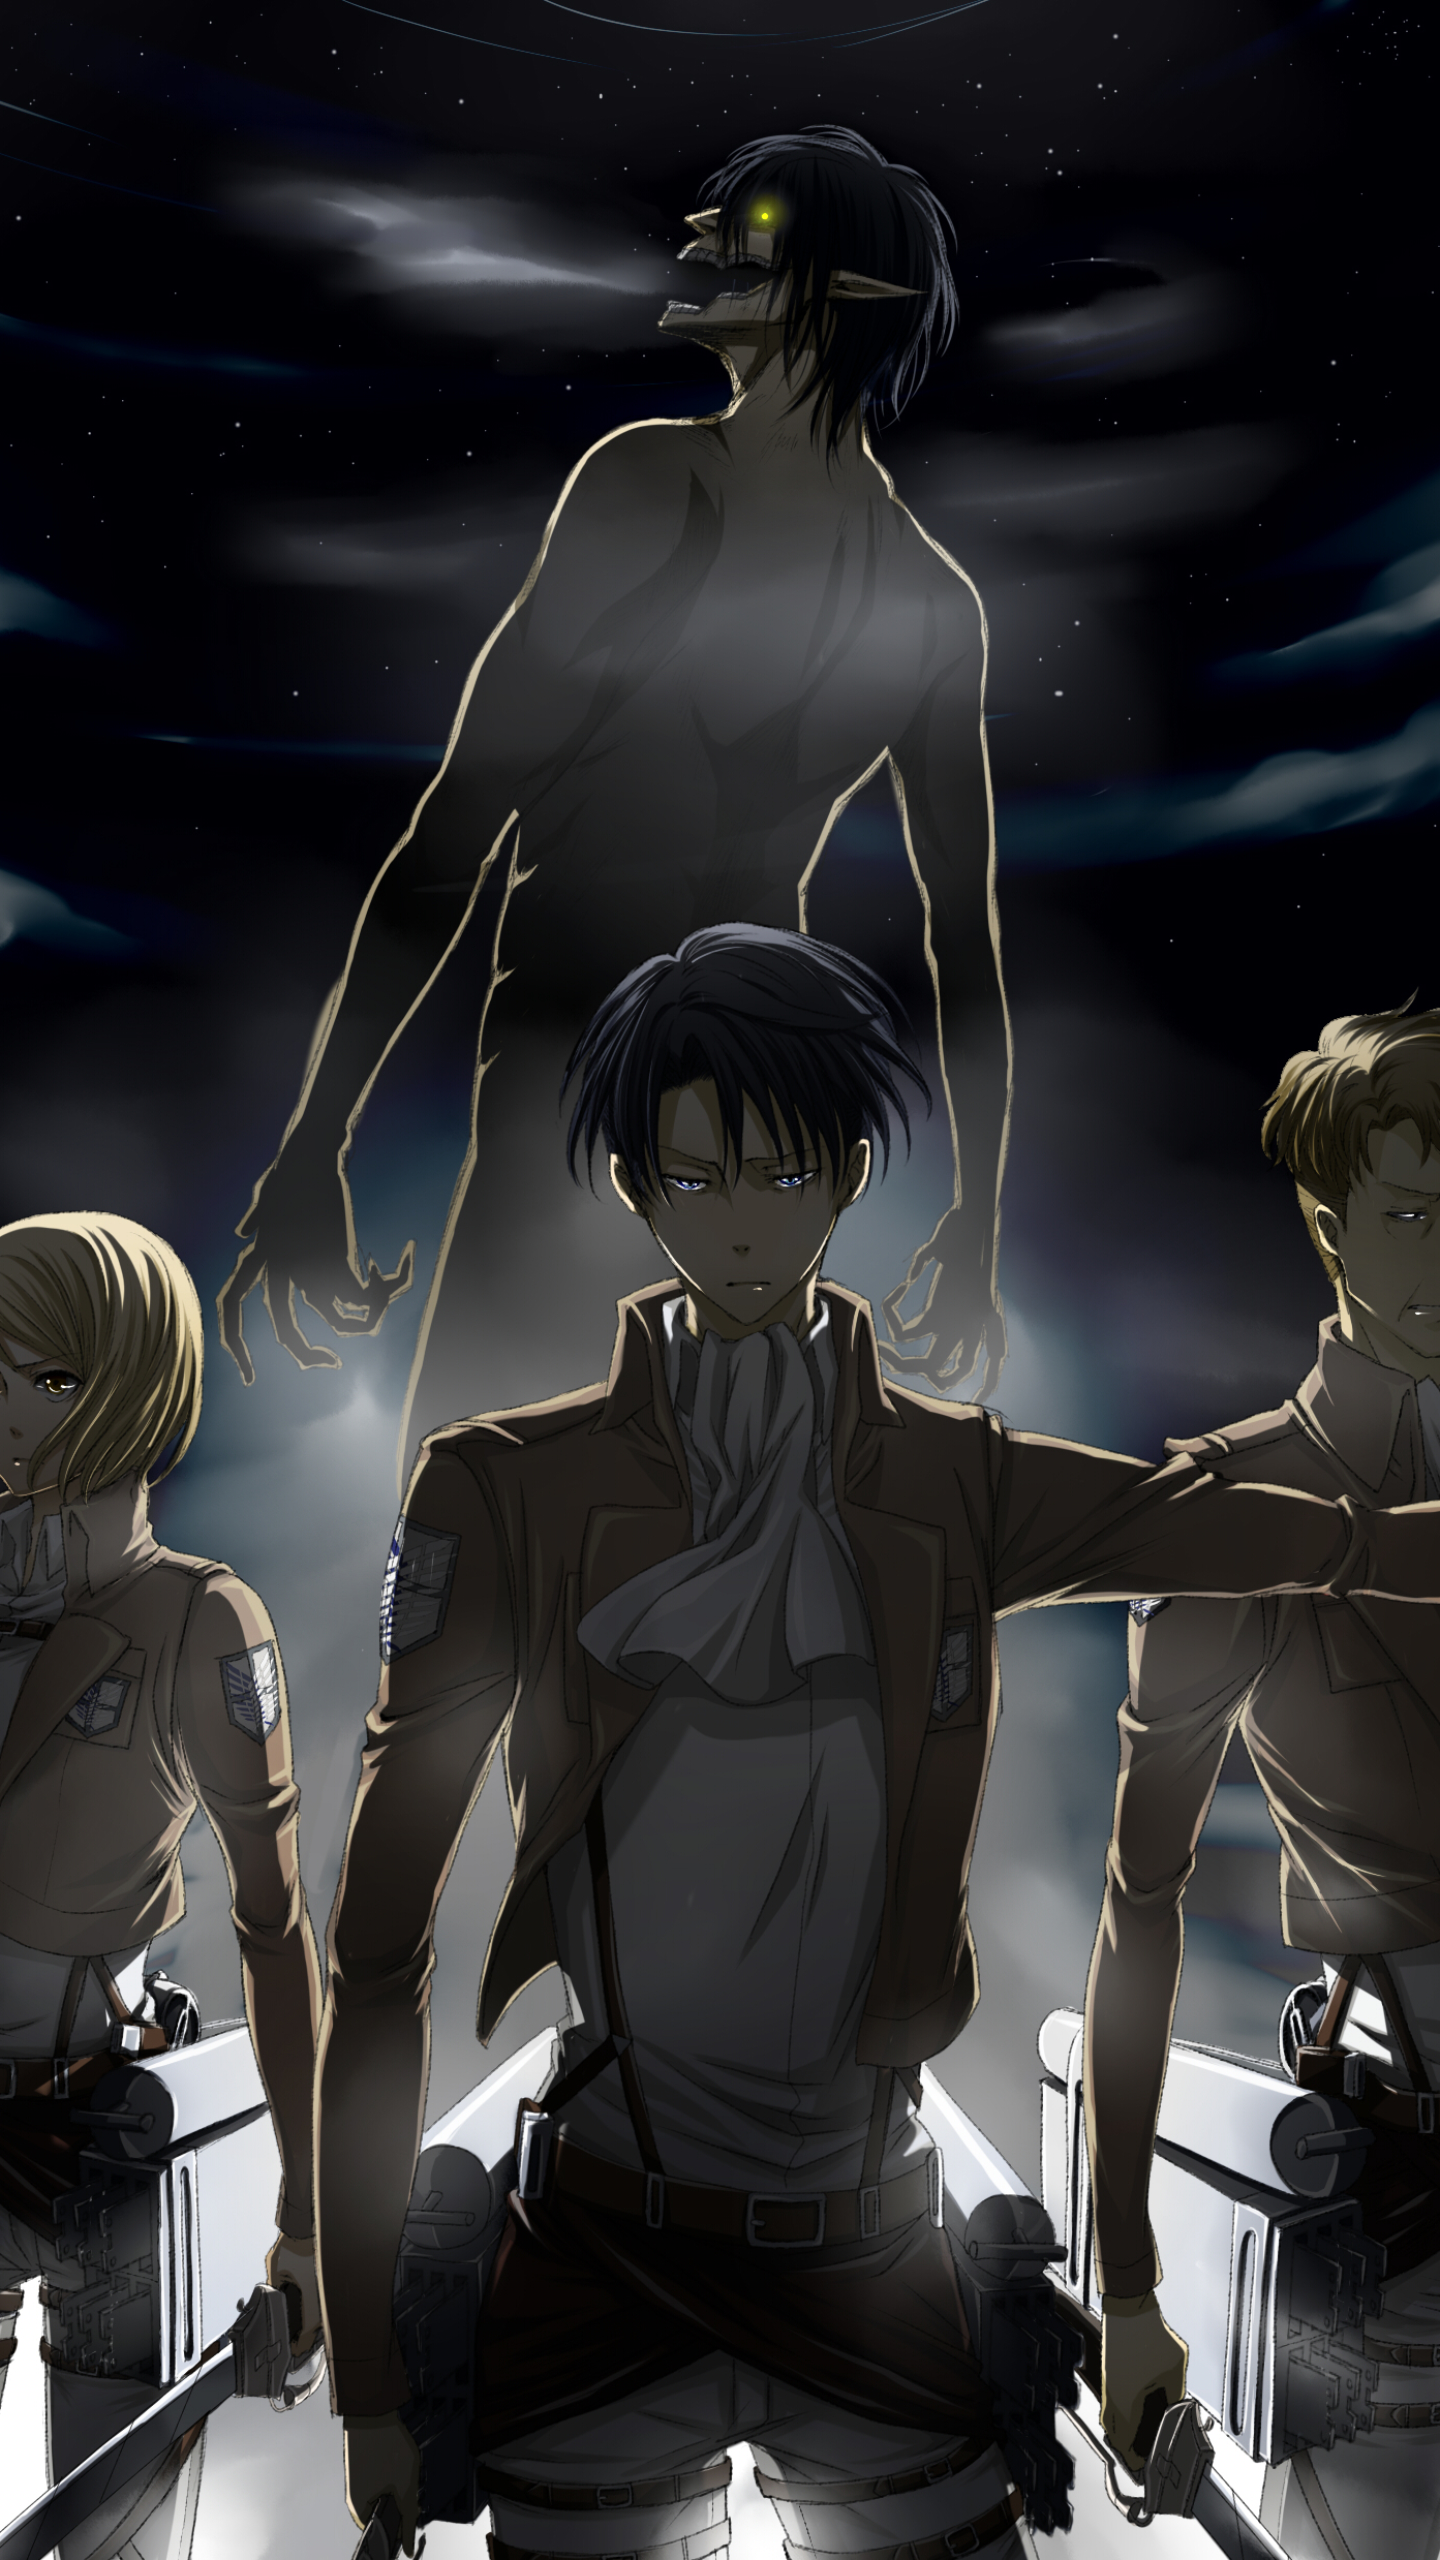 Anime Attack On Titan 1440x2560 Wallpaper Id 680885 Mobile Abyss